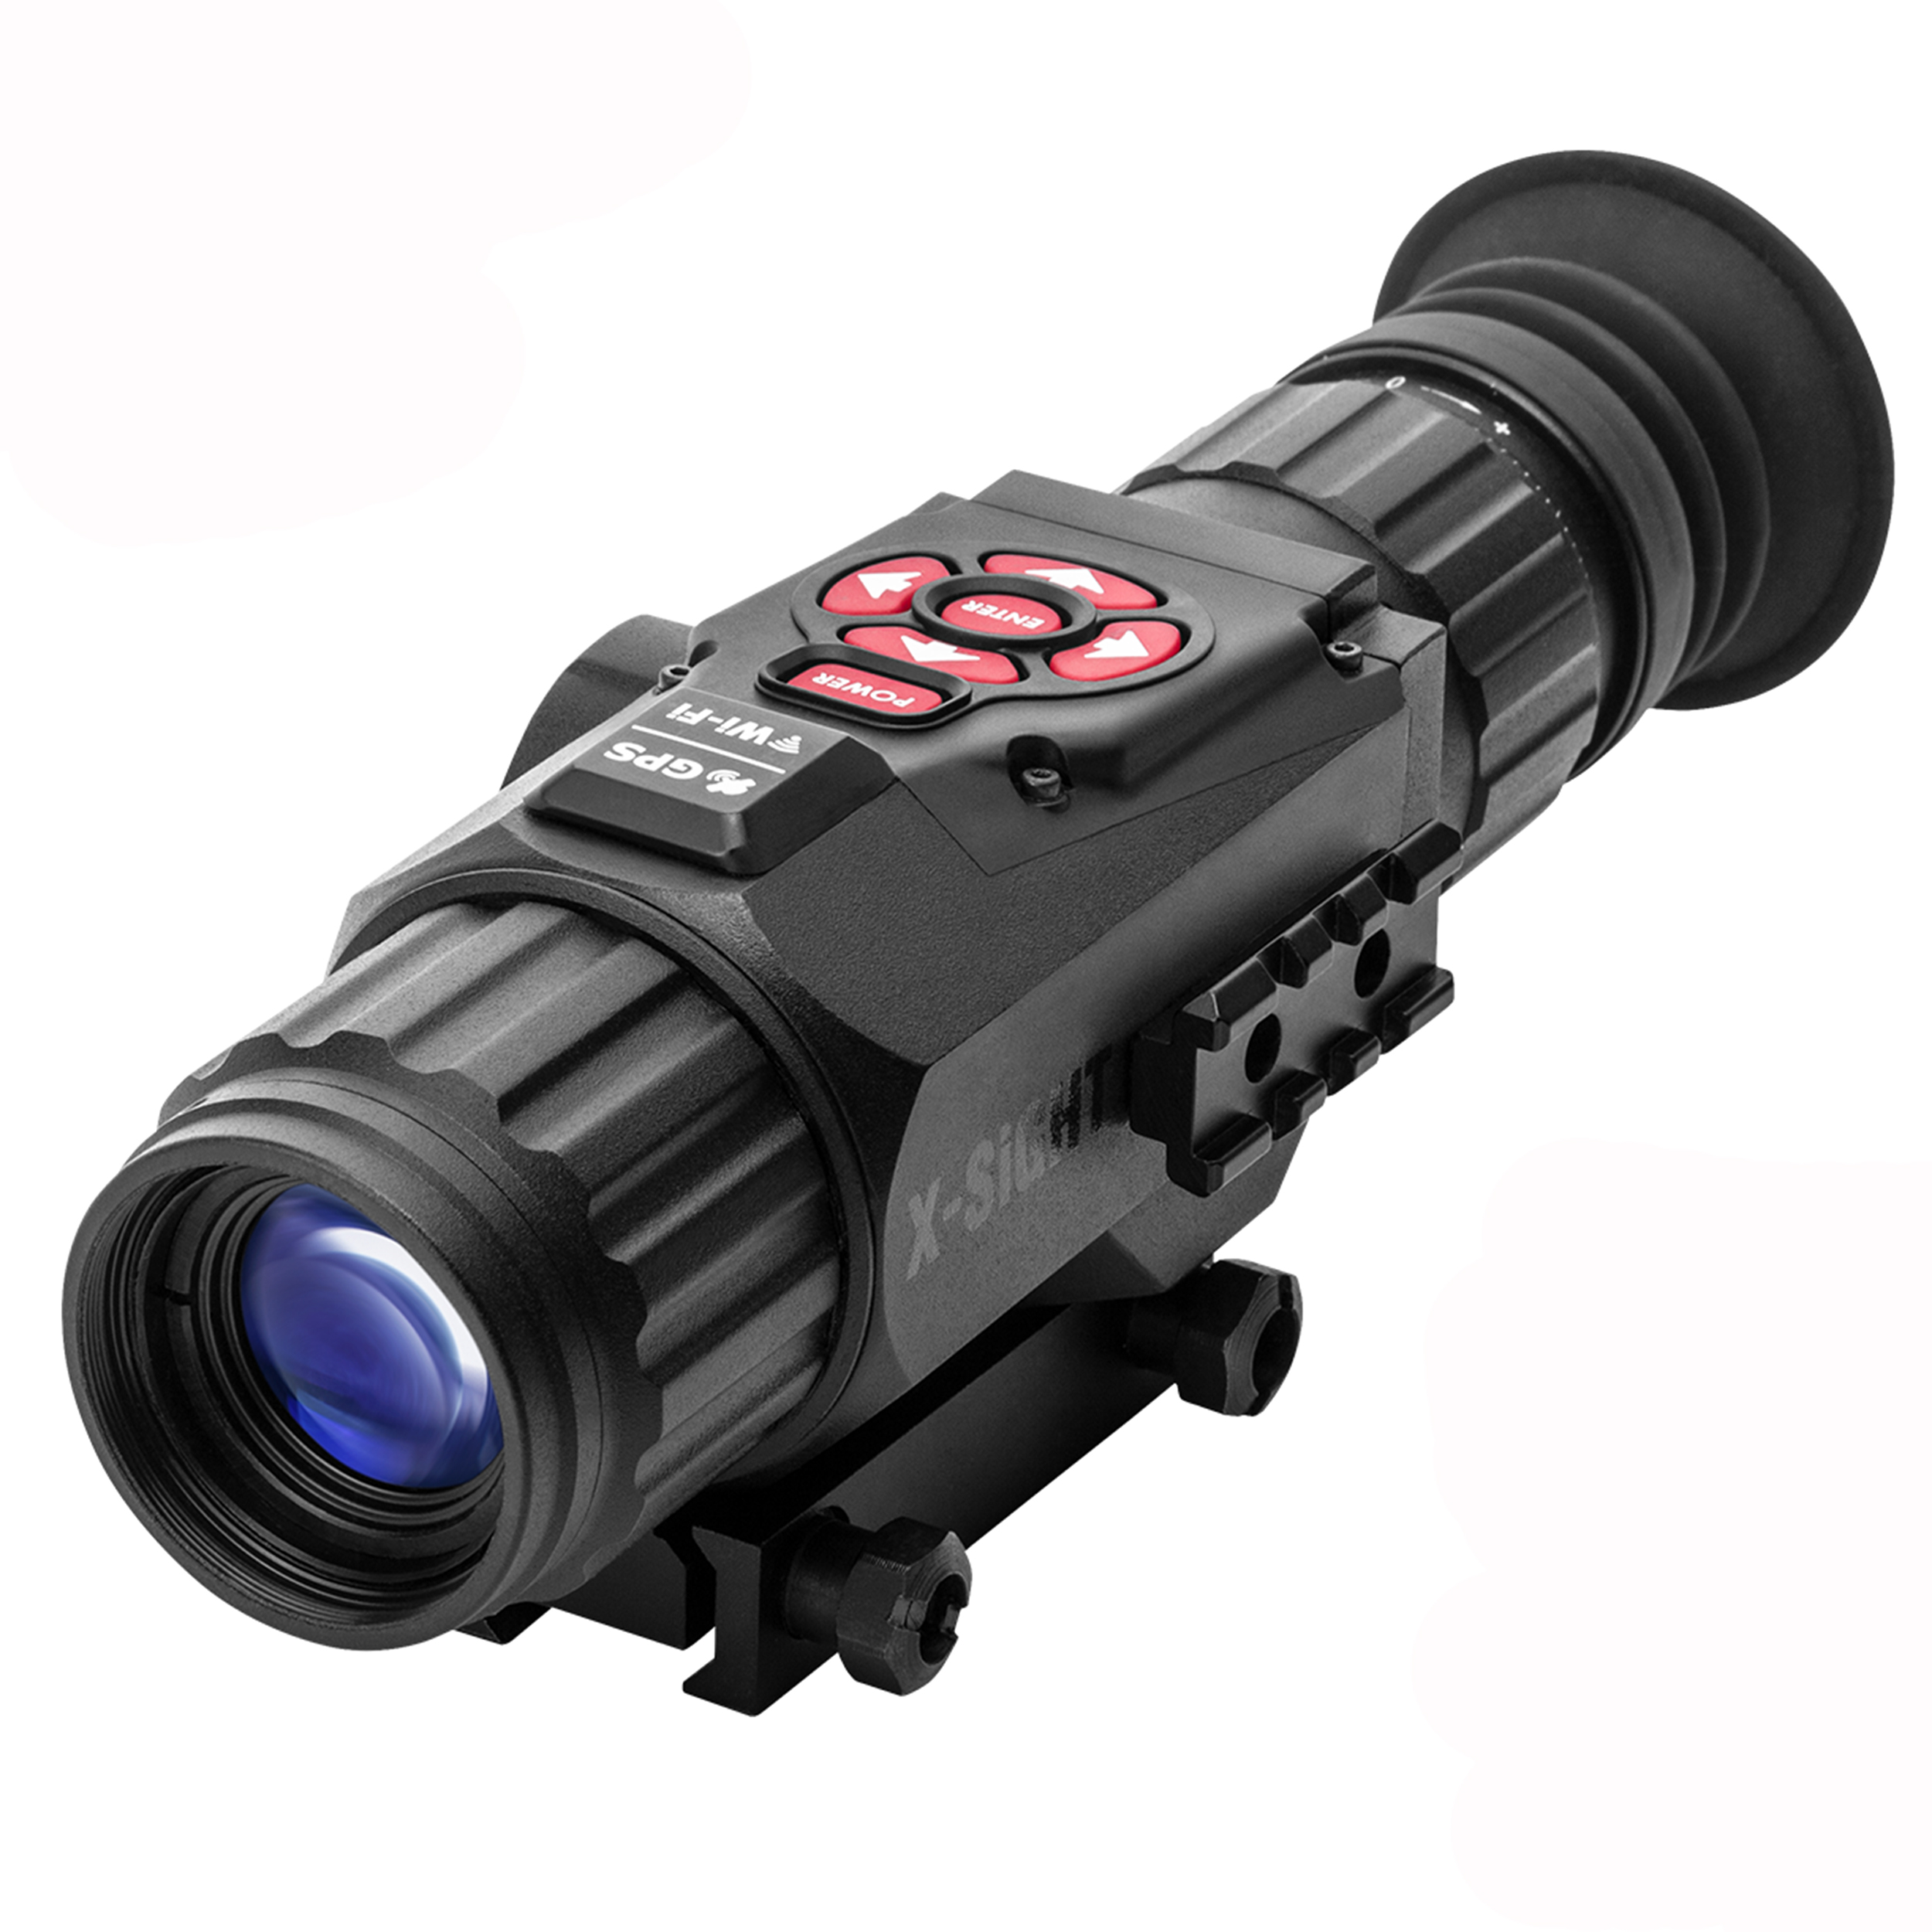 ATN Corporation Optics GWSXS312A X-Sight Night Vision Riflescope 3-12x